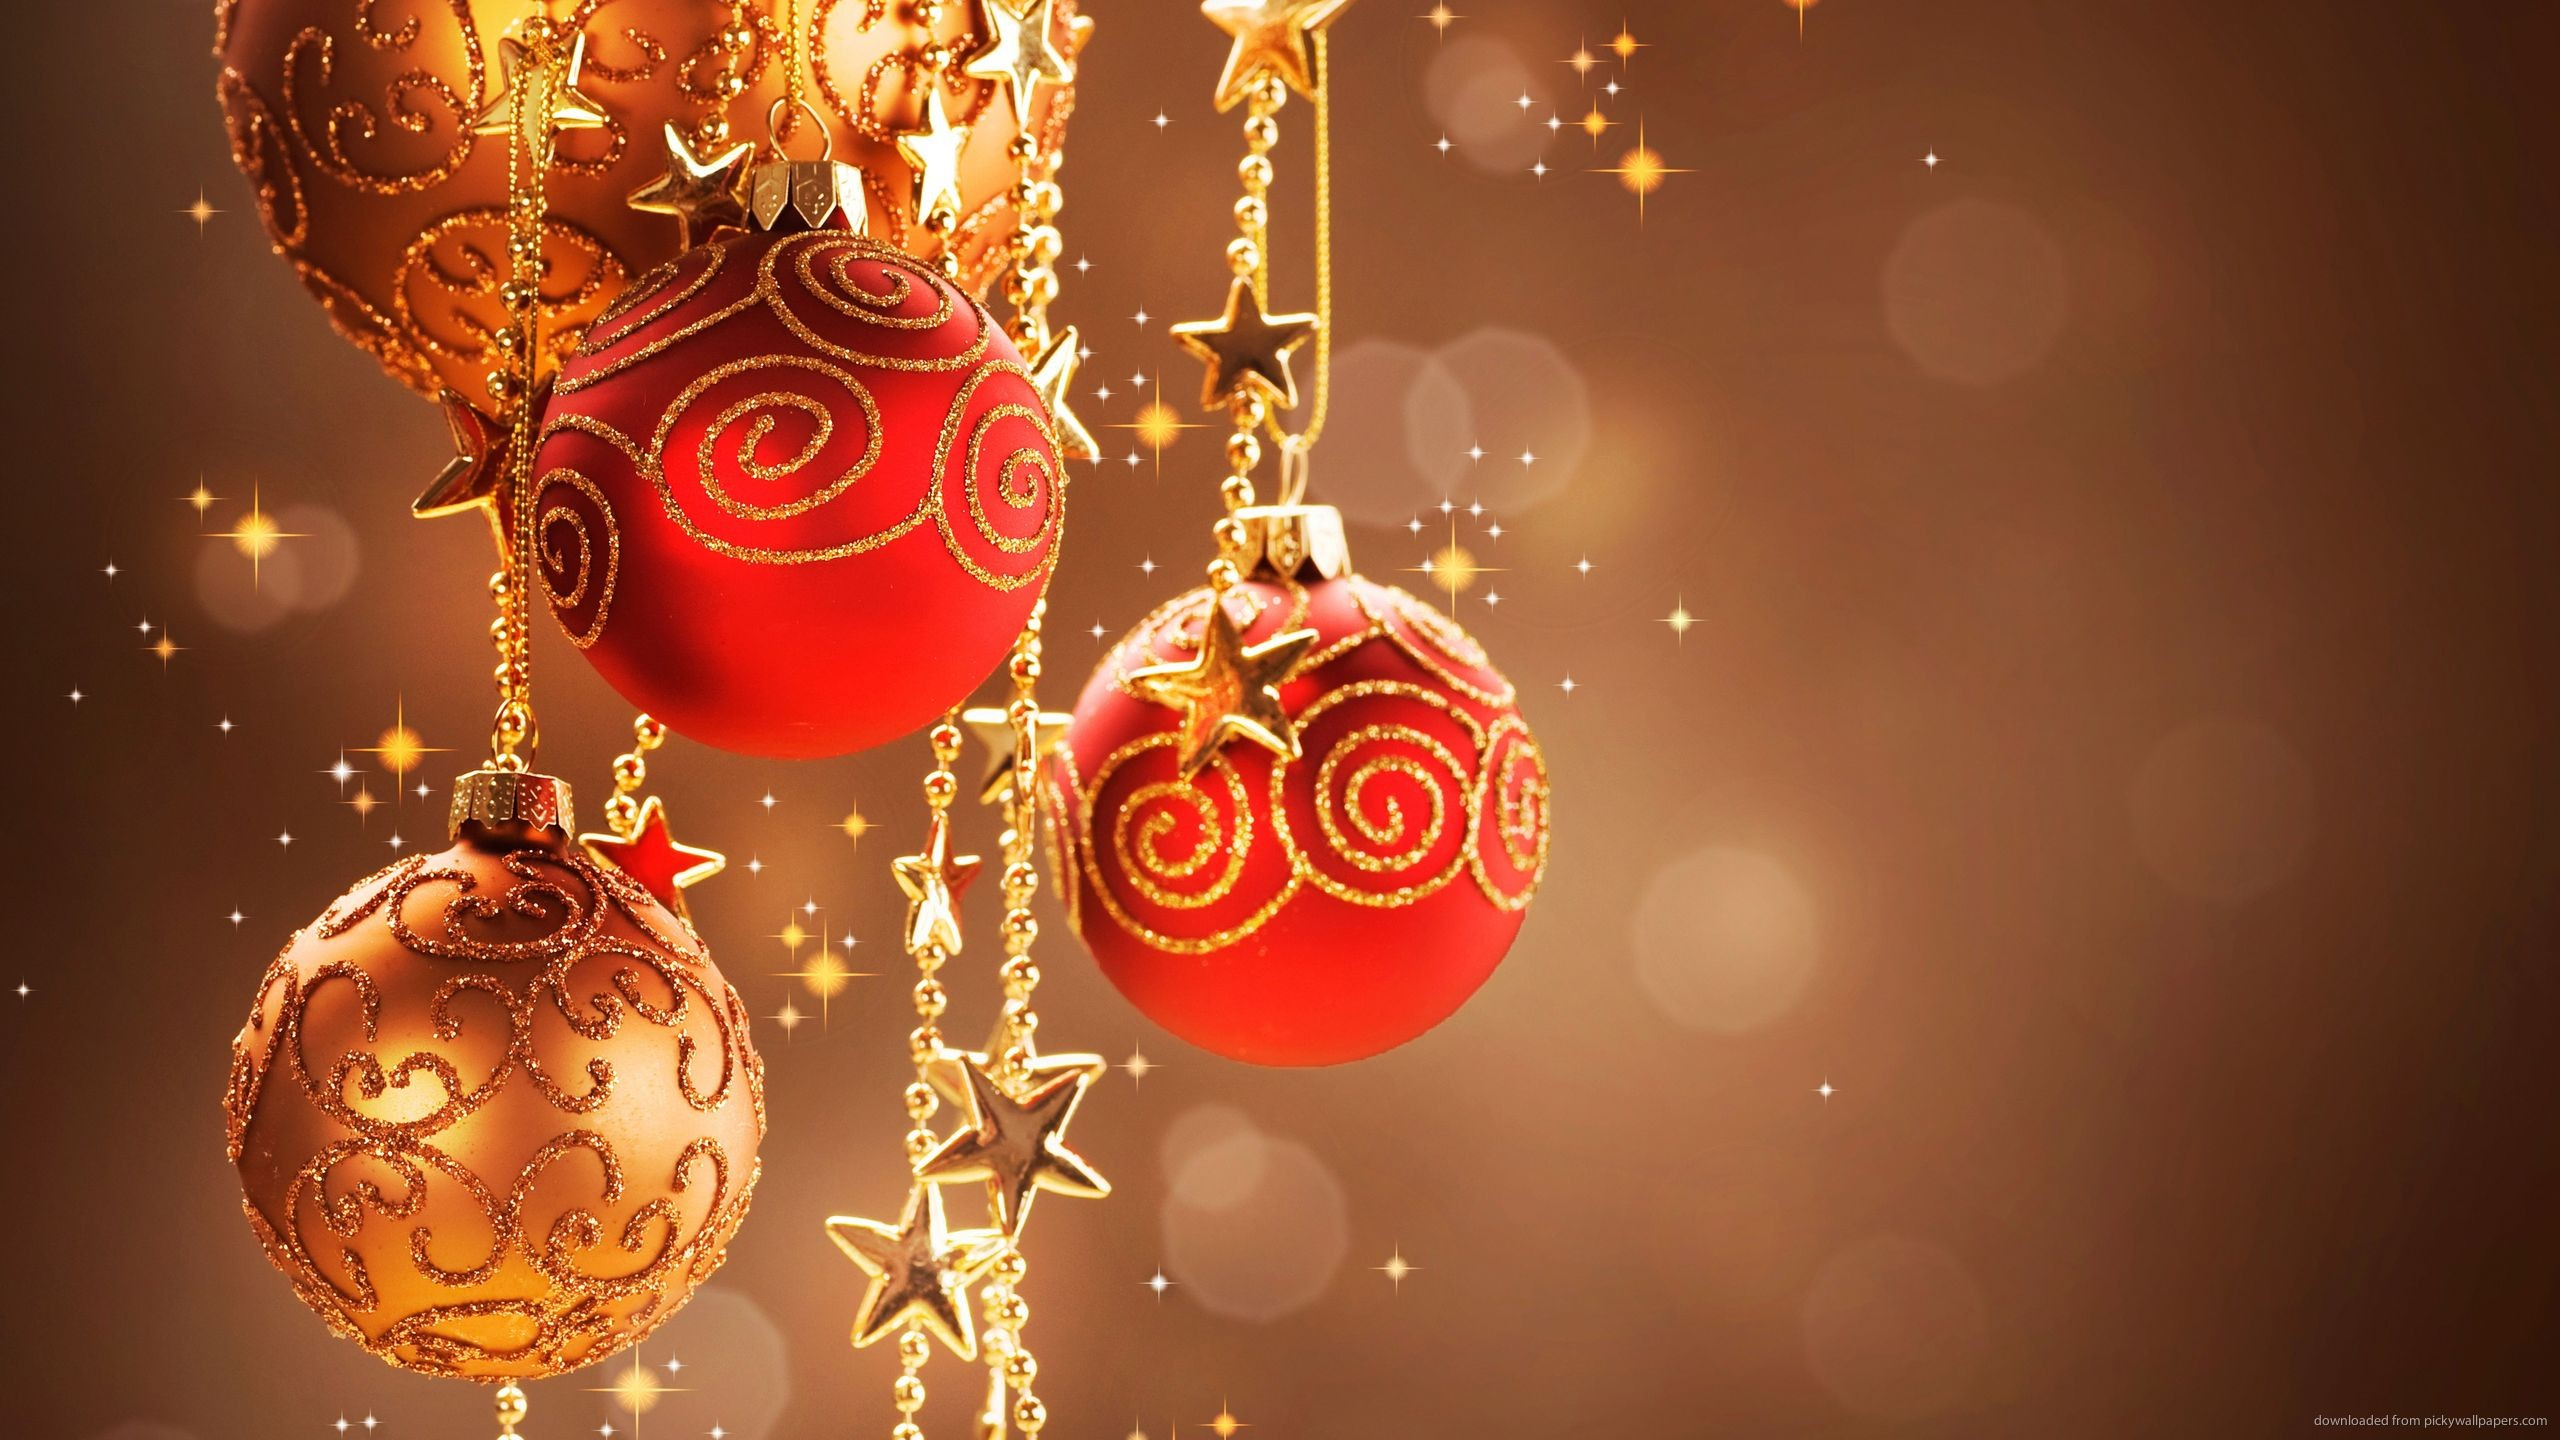 Christmas Wallpaper HD ·① Download Free HD Backgrounds For